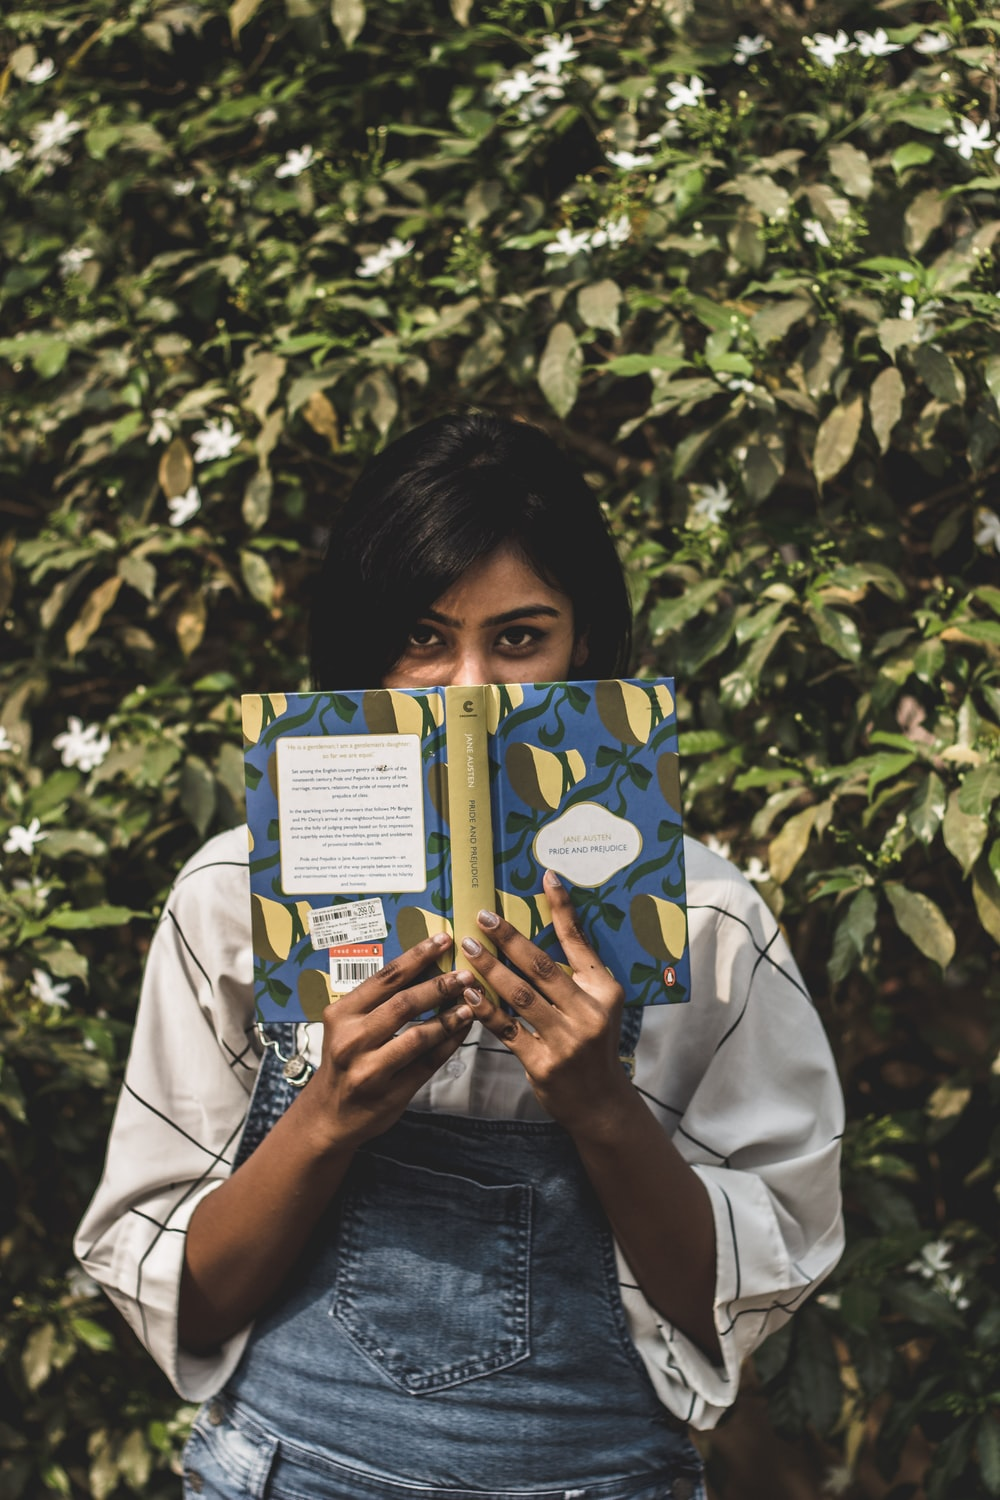 woman covering her face with book standing in front of green plants